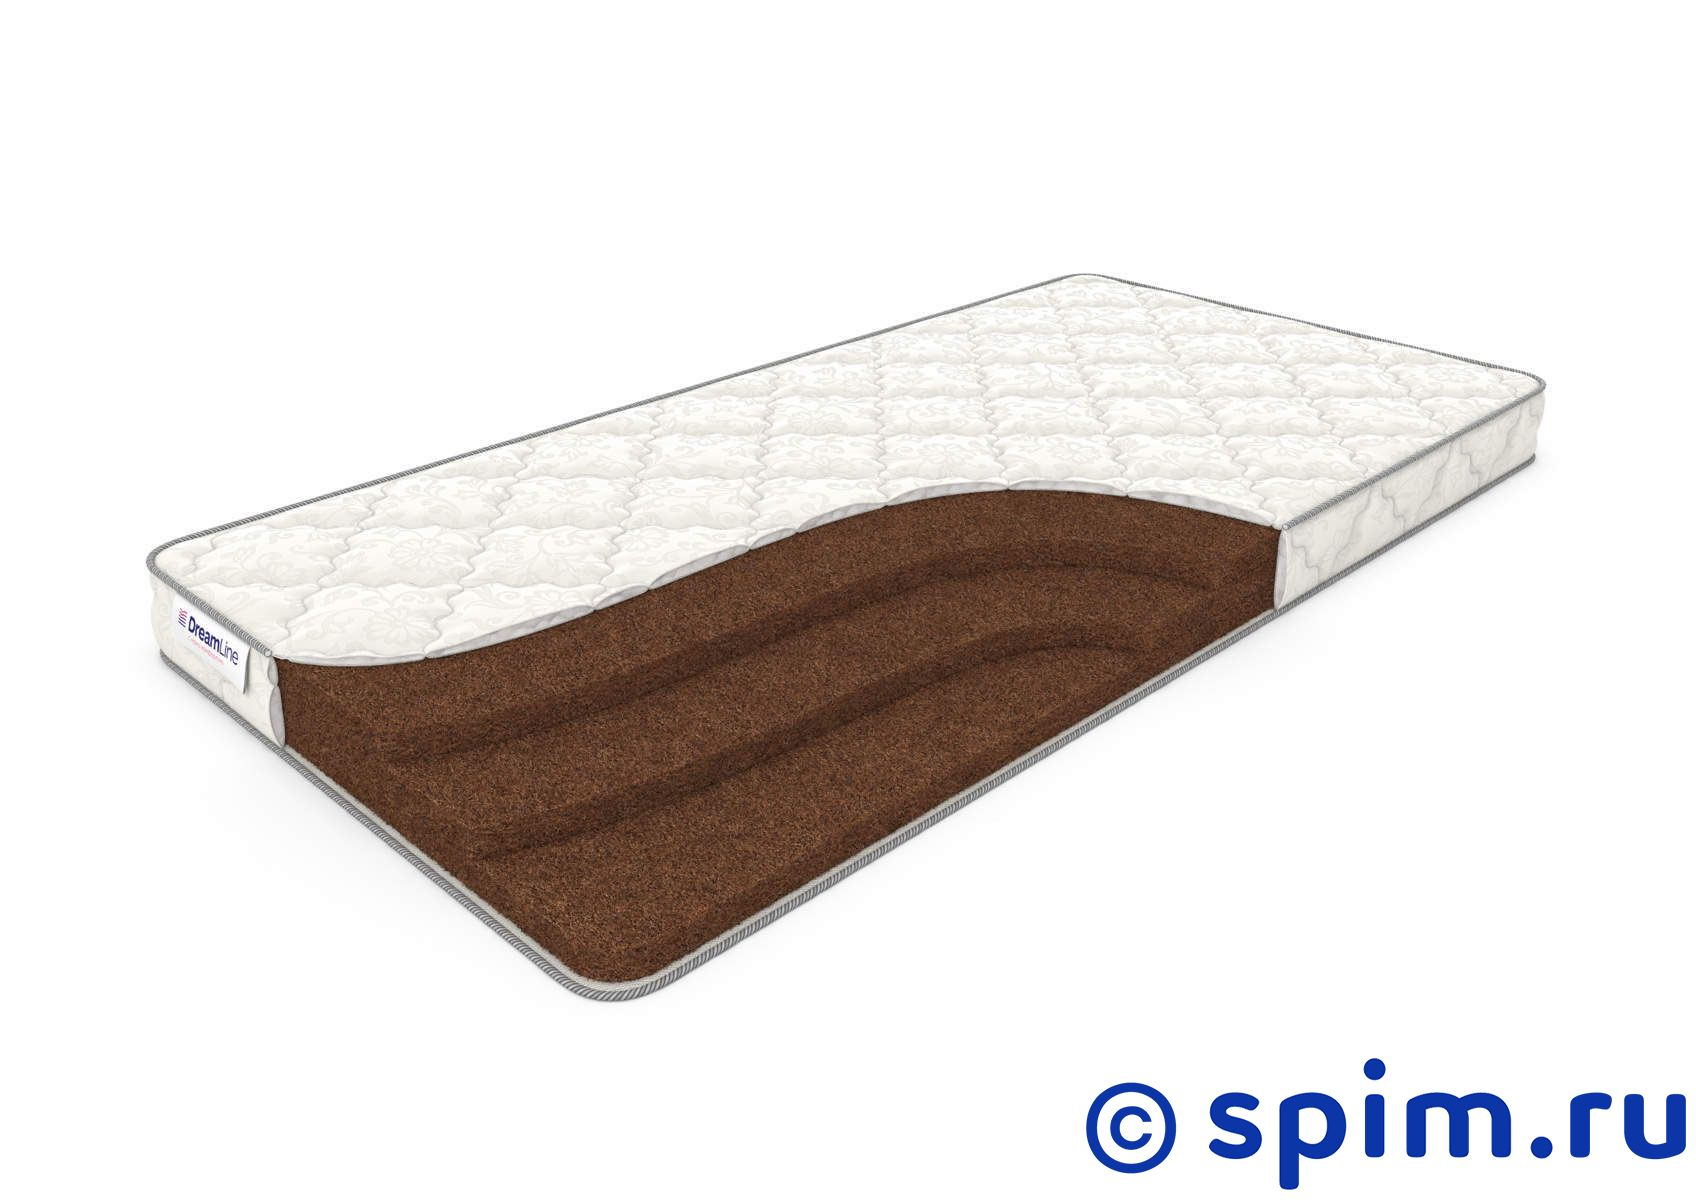 Матрас DreamLine Springless Orto 9 90х195 см матрас dreamline springless soft 180х195 см